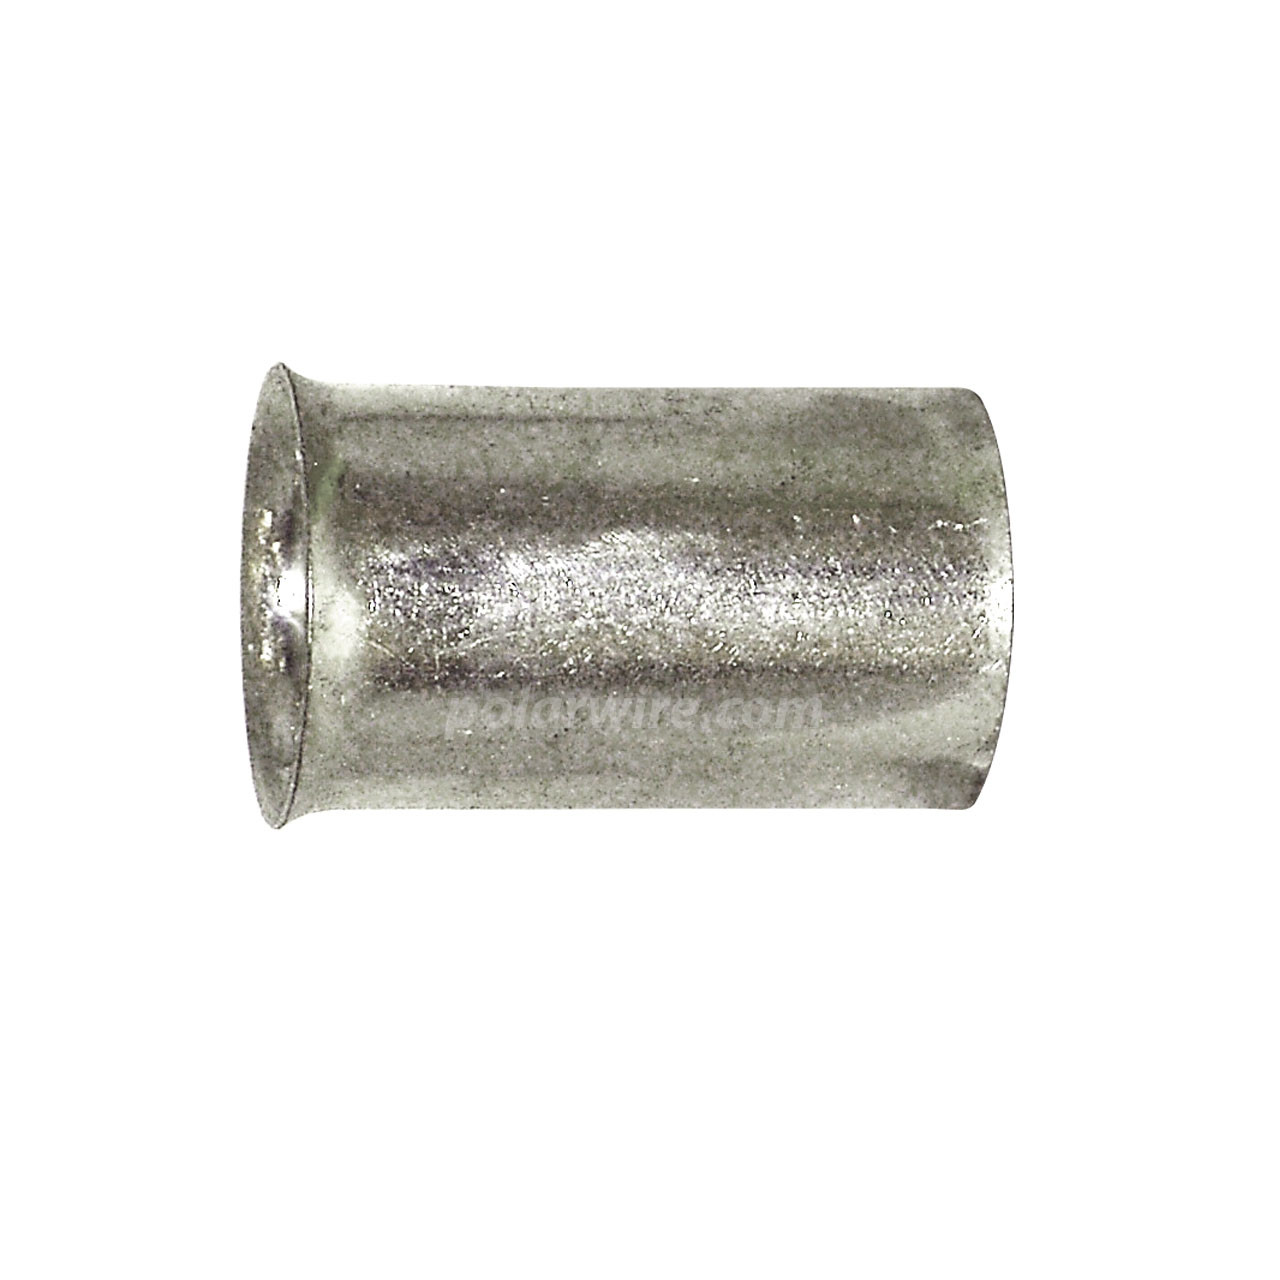 FERRULE 250MCM UNINSULATED 32MM L